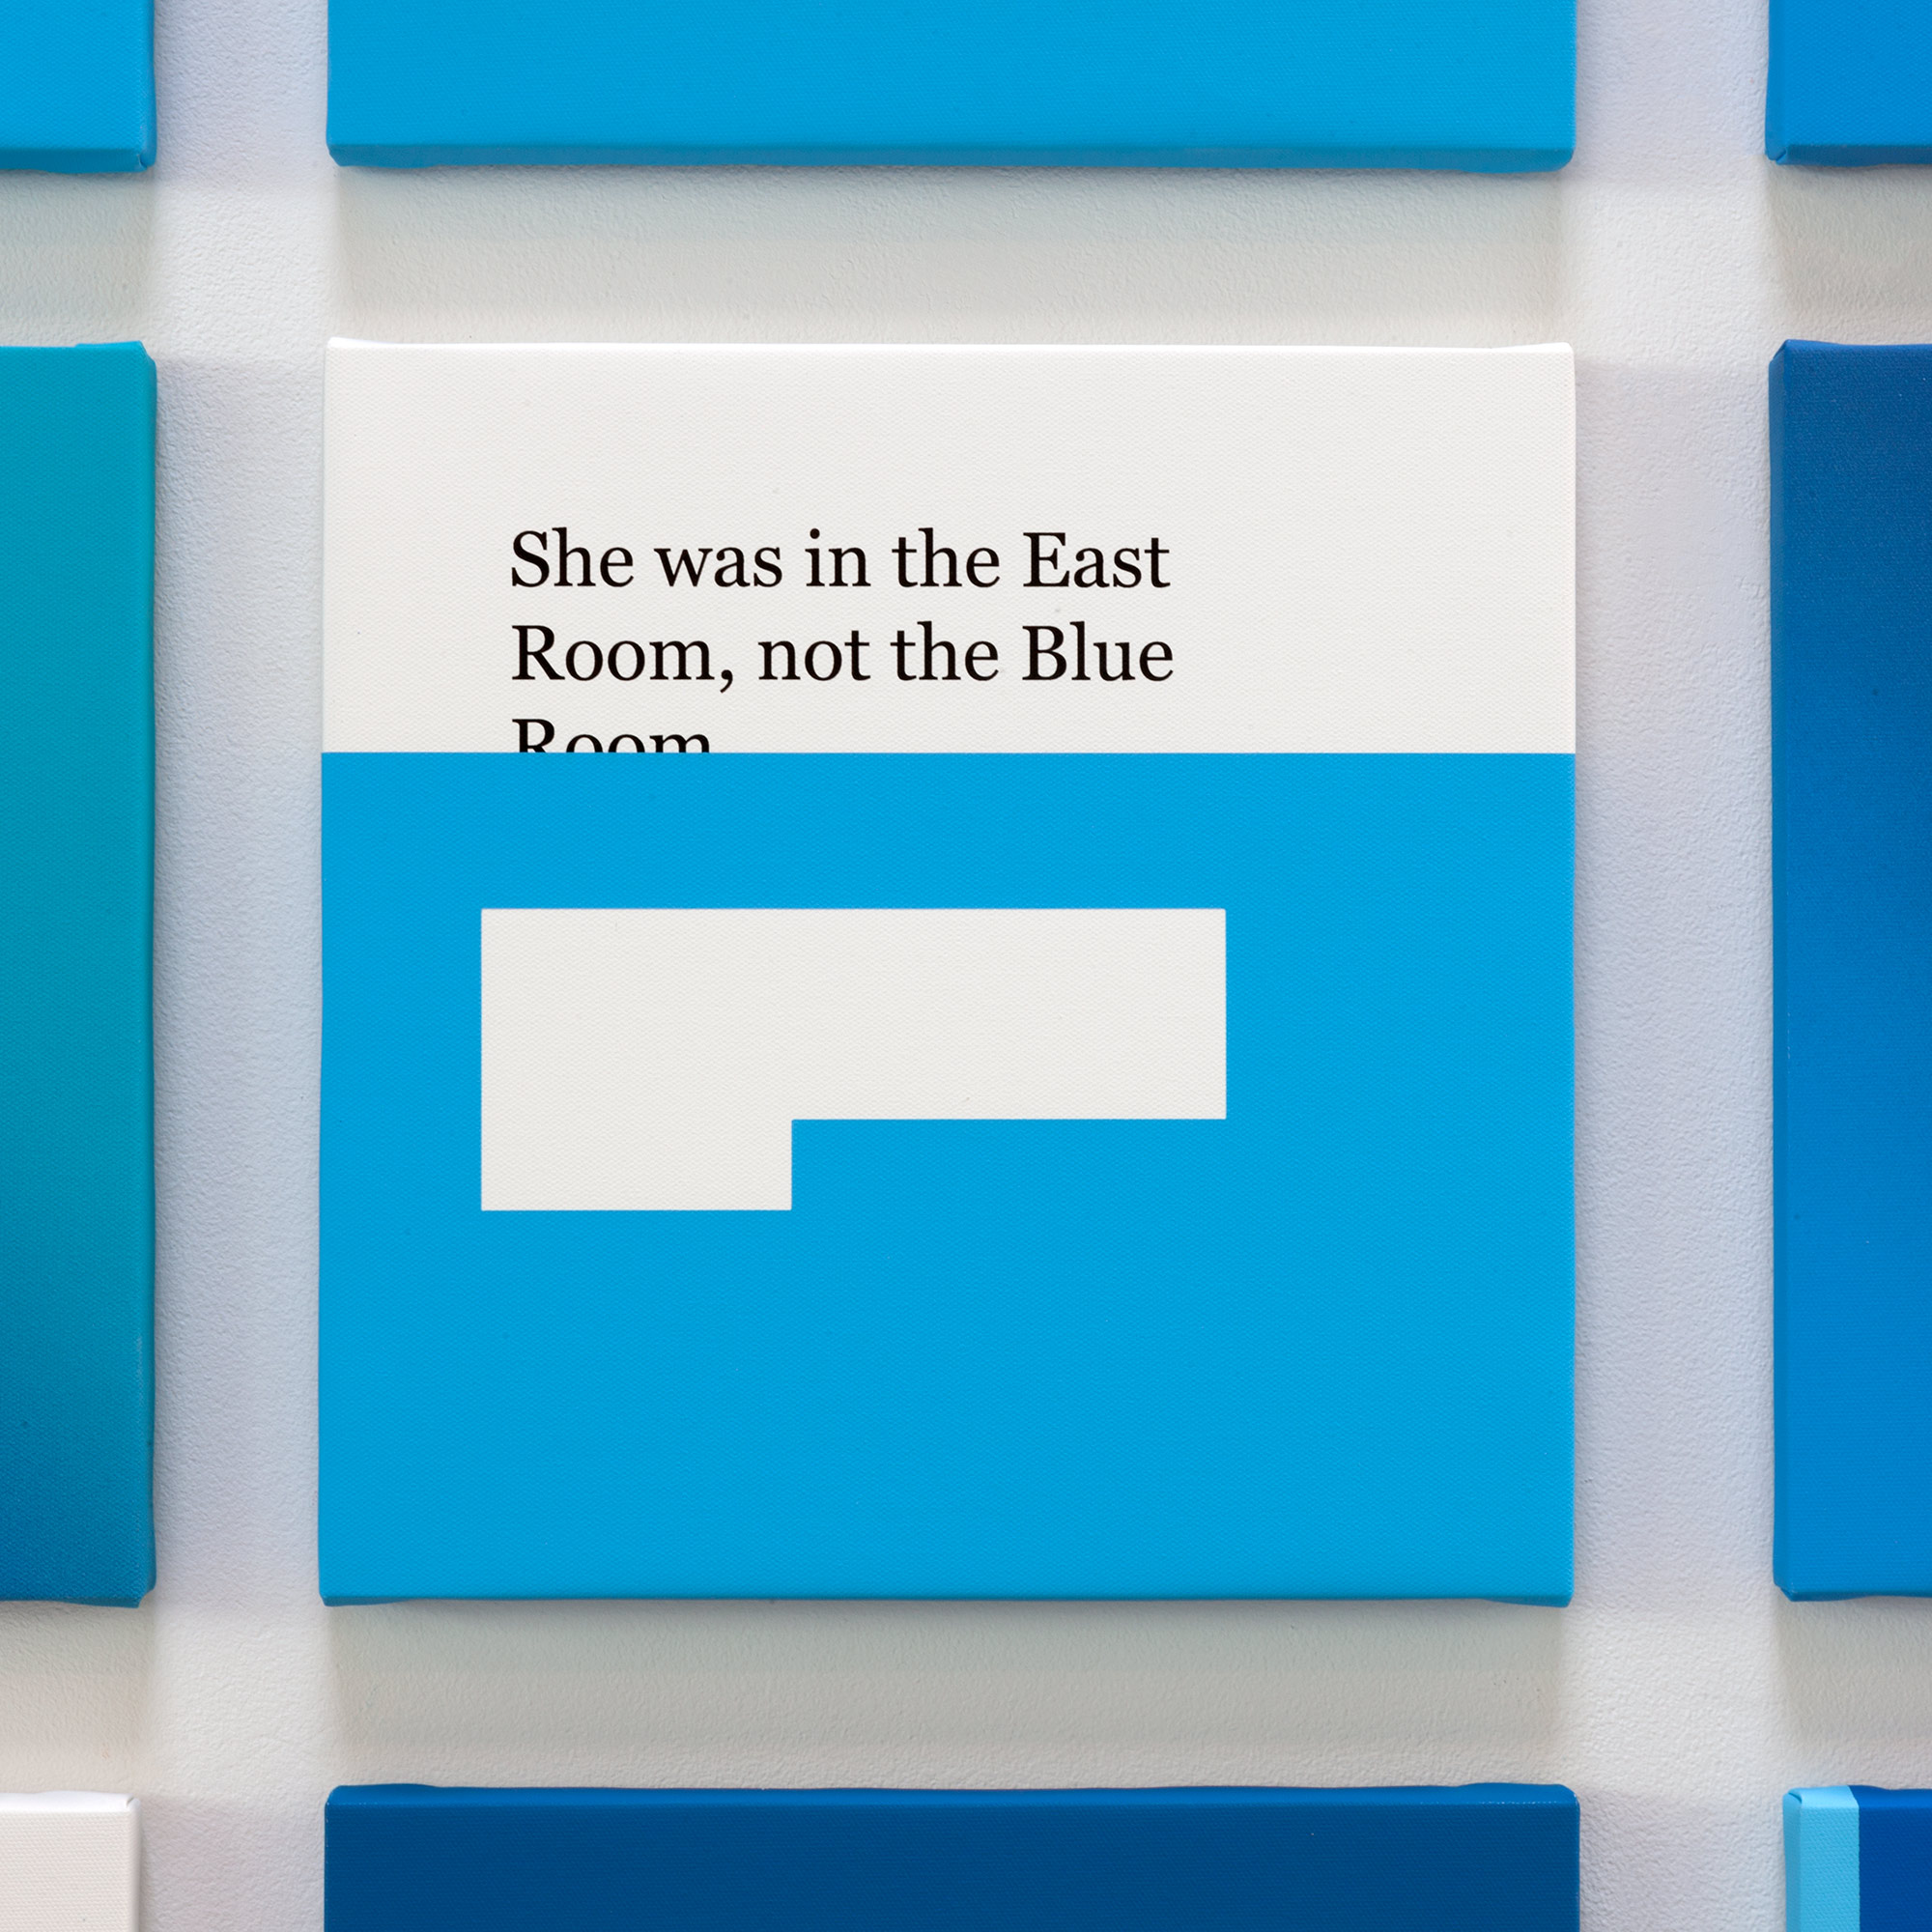 CORRECTIONS: NOT THE BLUE ROOM